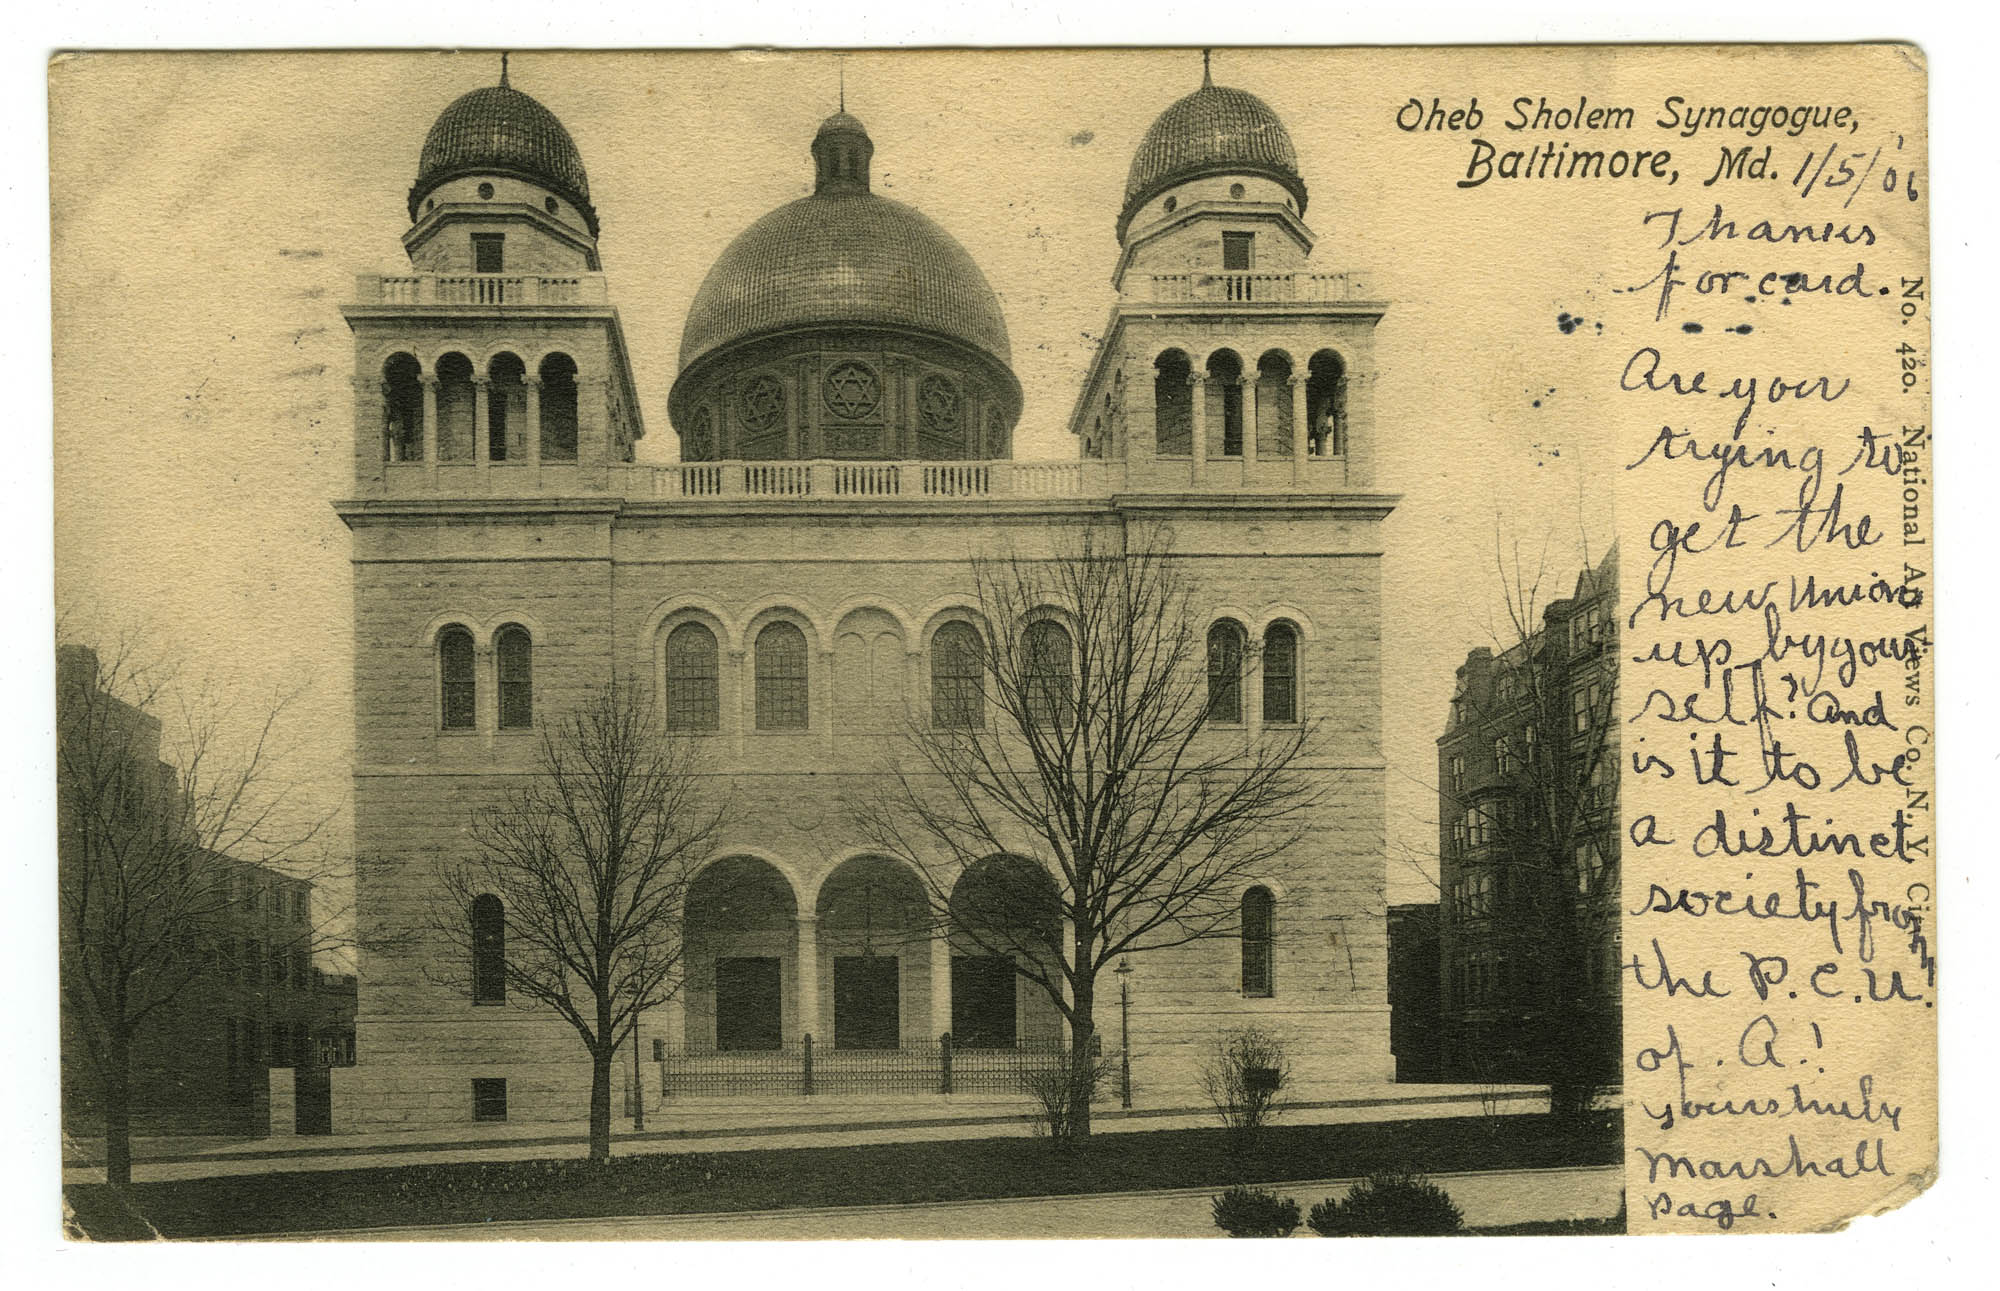 Oheb Sholem Synagogue, Baltimore, Md.